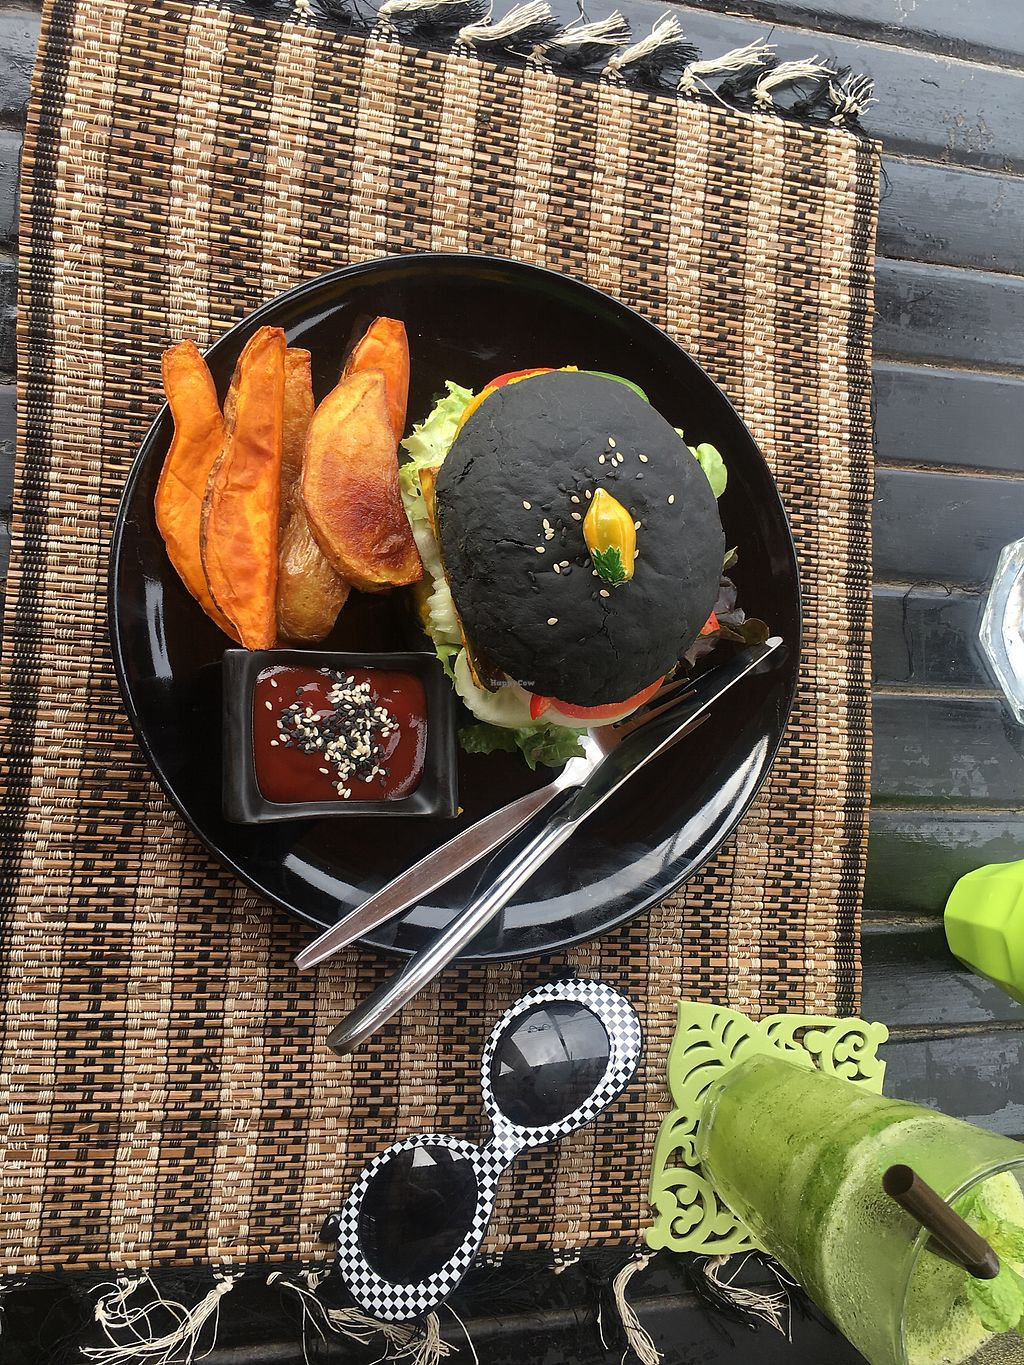 """Photo of Happy Veggie  by <a href=""""/members/profile/ShannonTran"""">ShannonTran</a> <br/>Tofu burger <br/> December 11, 2017  - <a href='/contact/abuse/image/83999/334557'>Report</a>"""